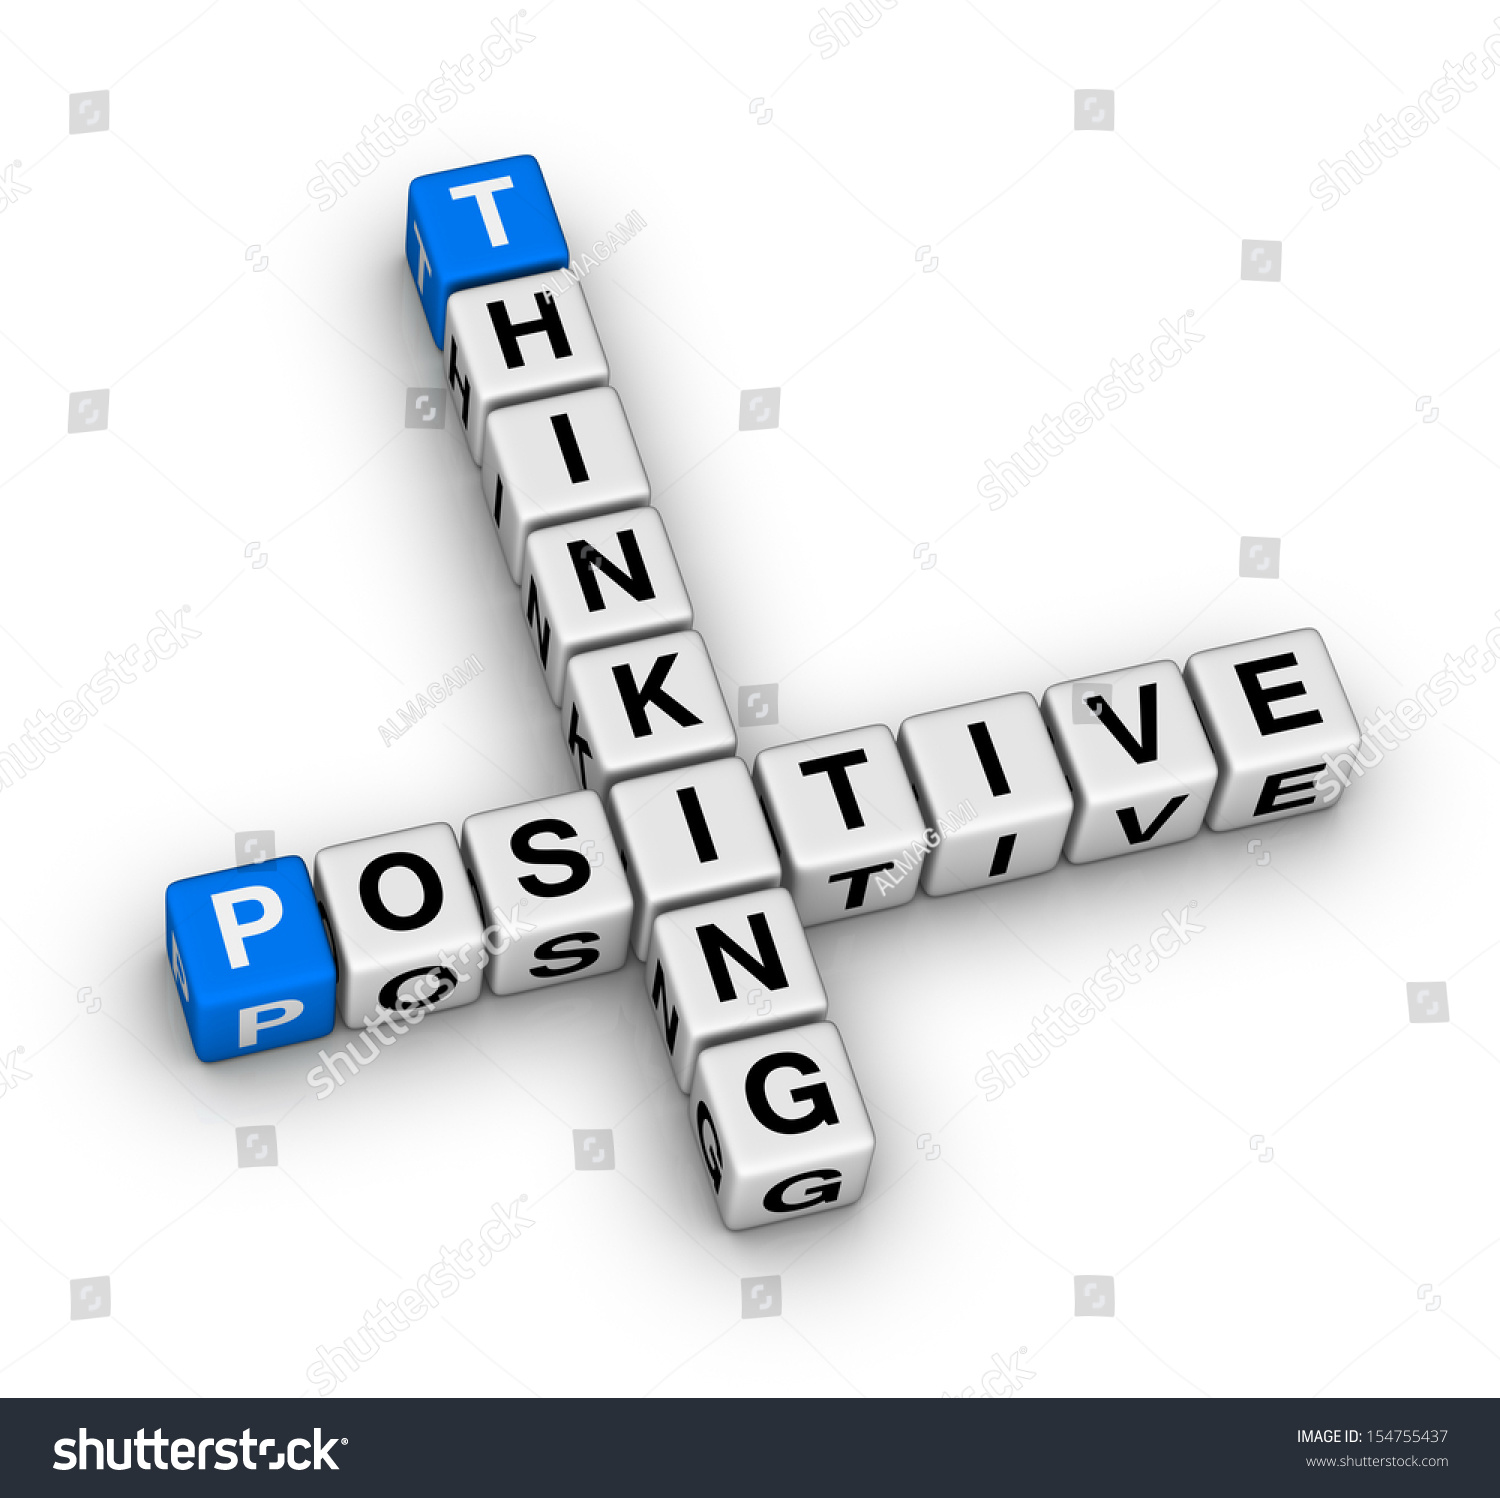 Positive thinking crossword puzzle stock illustration 154755437 positive thinking crossword puzzle biocorpaavc